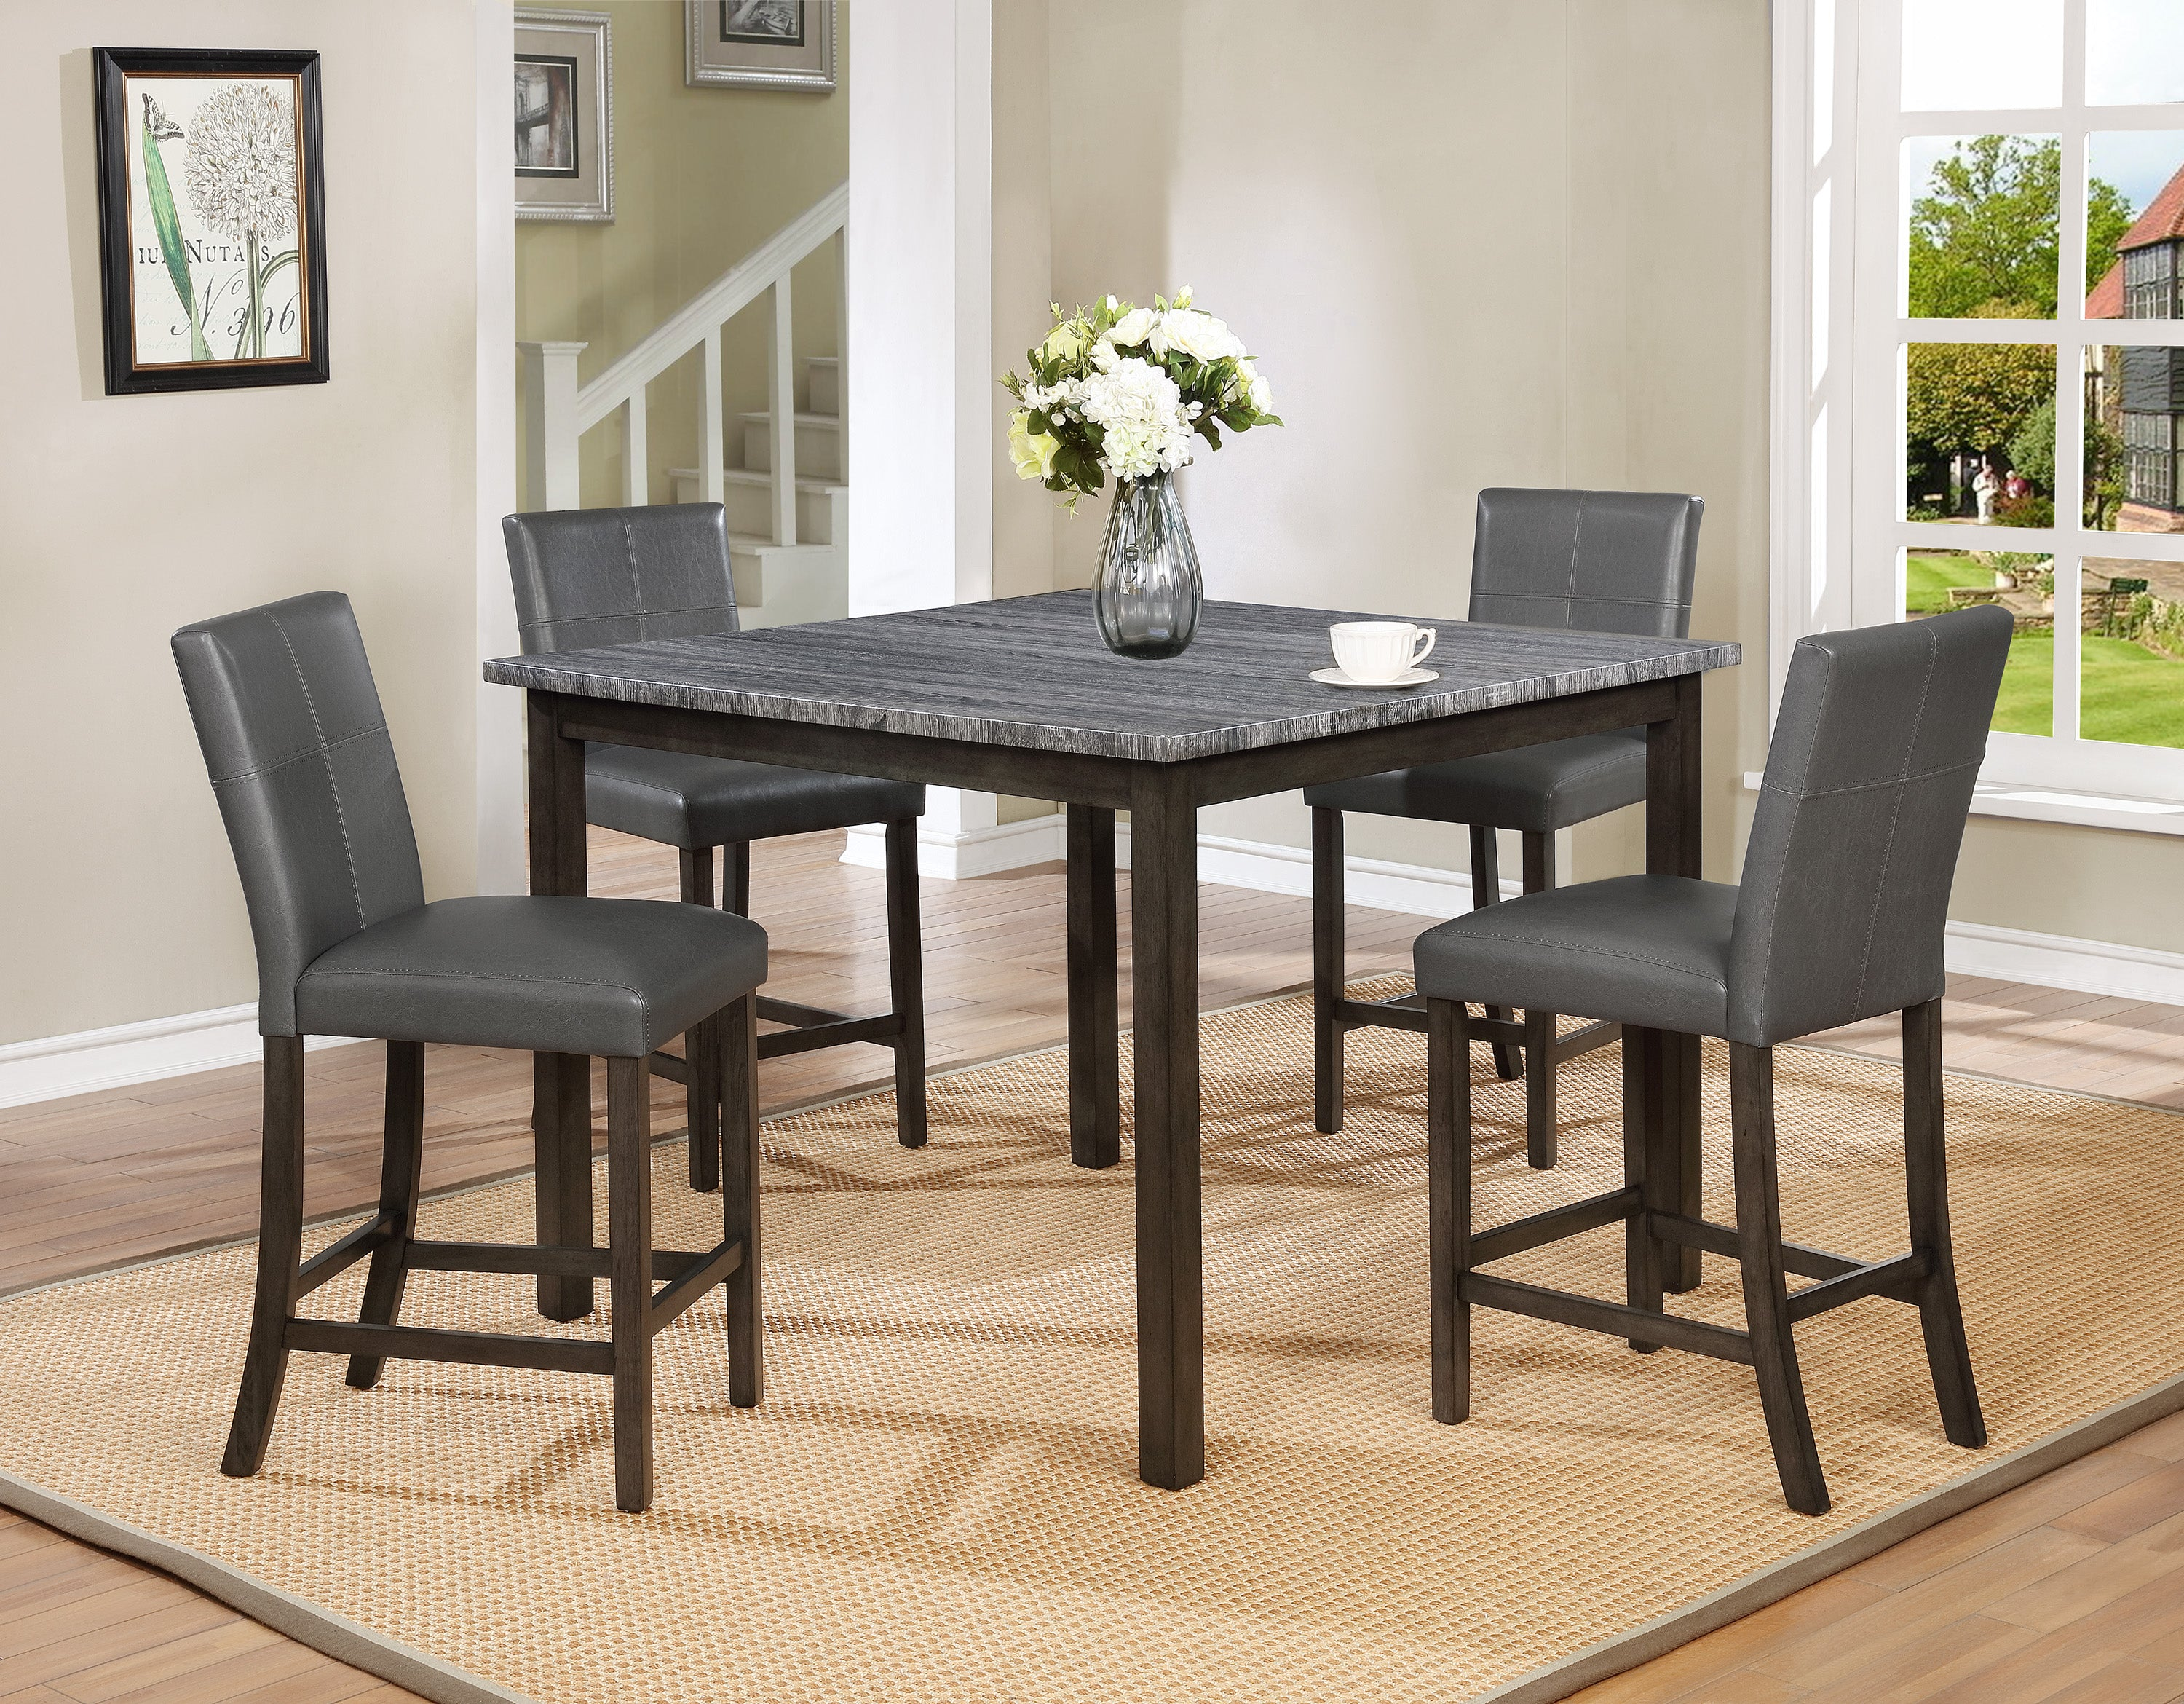 Pompei Gray Marble Counter Height Dining Set